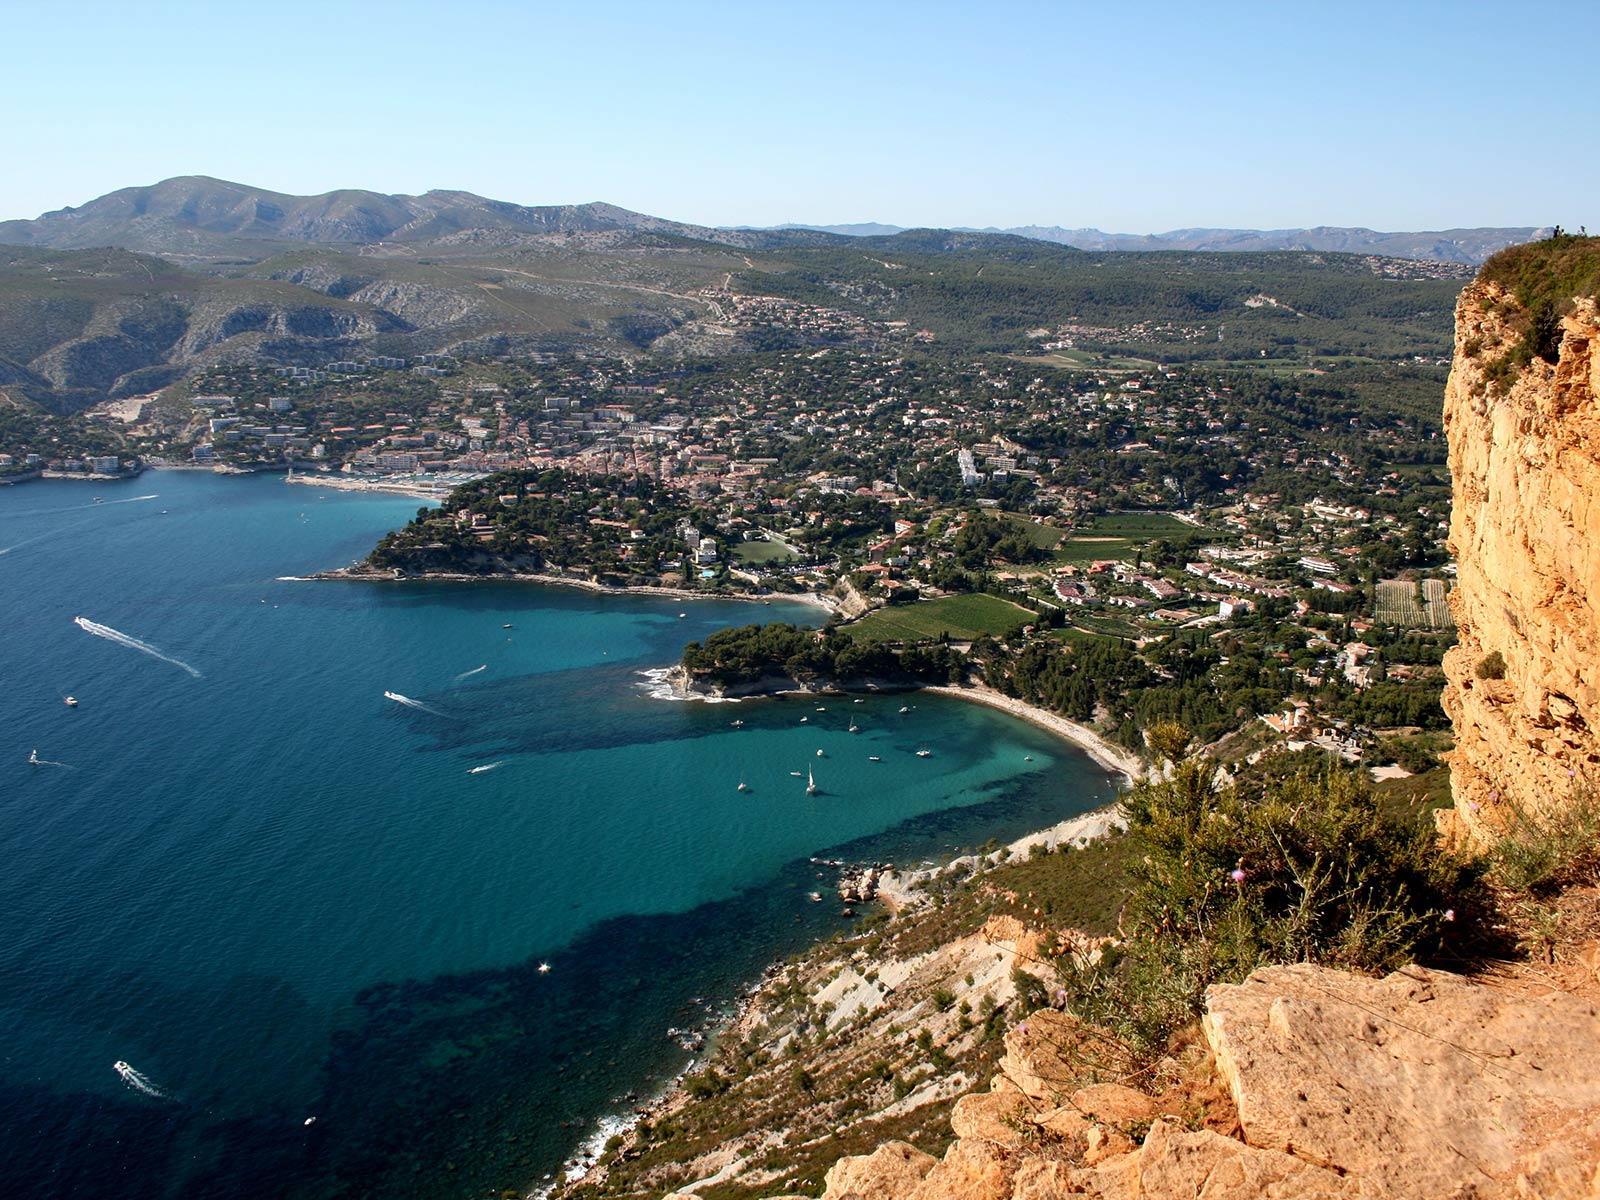 Camping cassis location camping cassis avec yelloh village for Camping cassis avec piscine